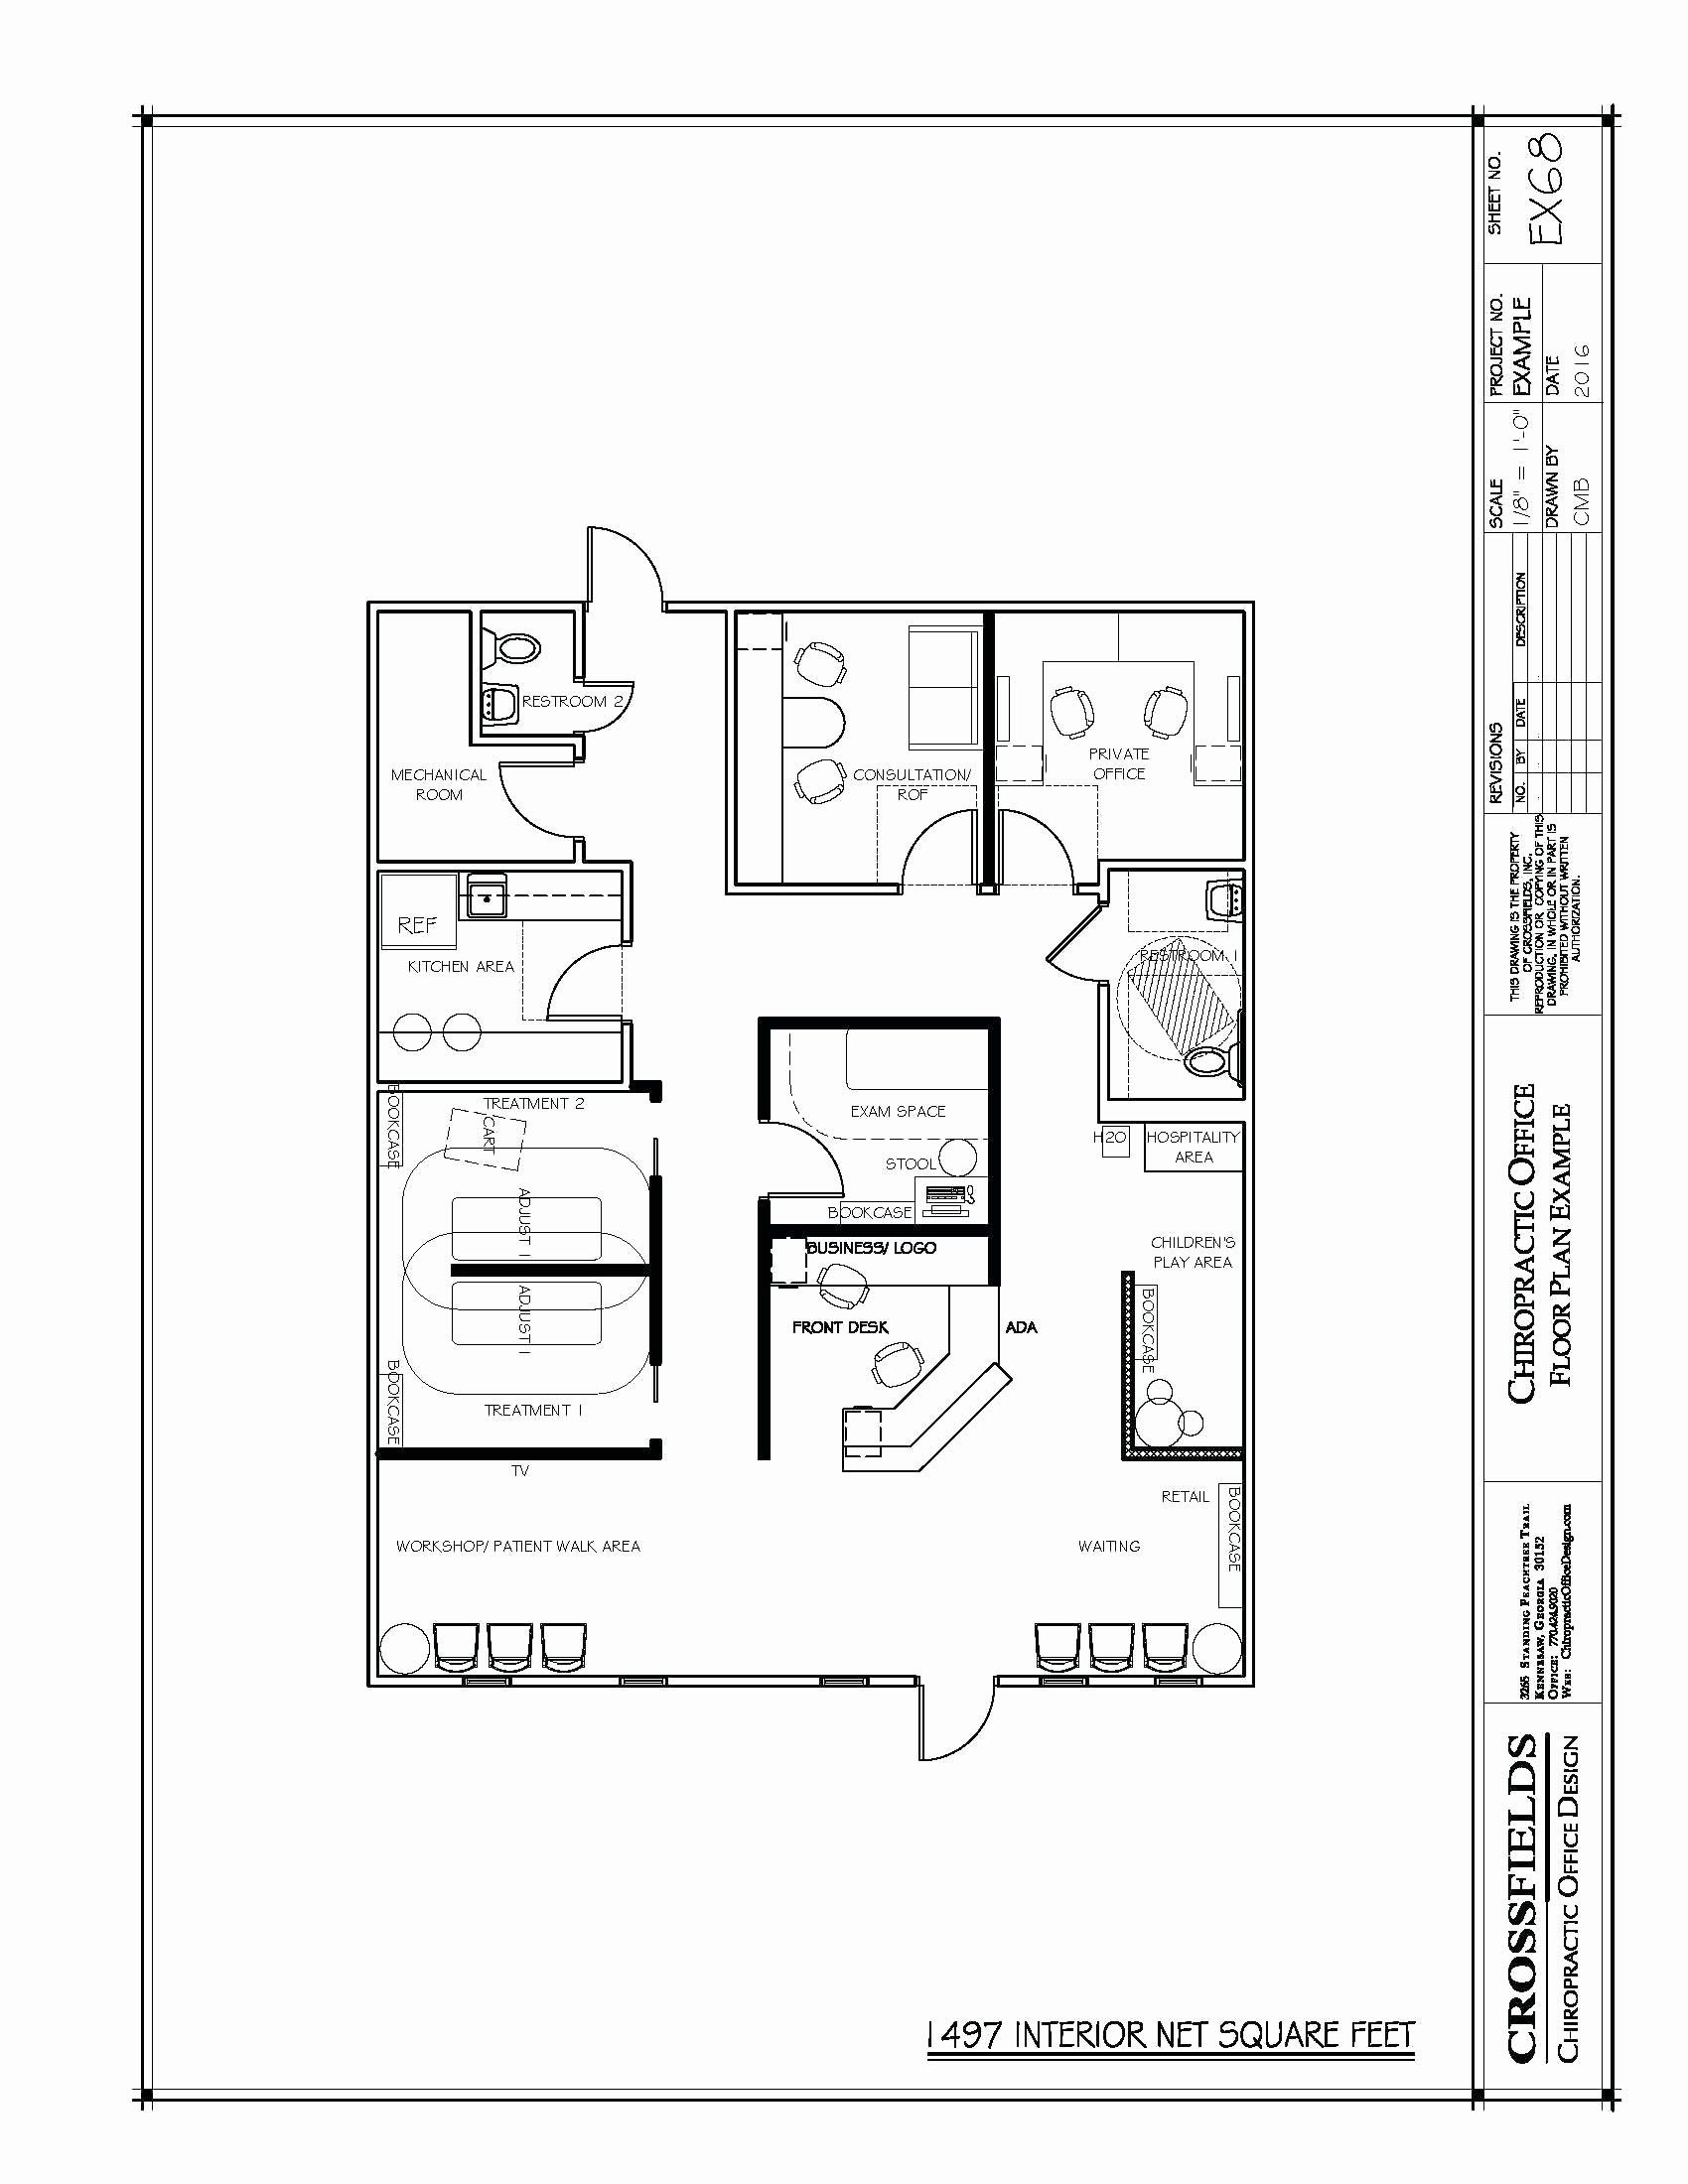 House Building Plans software Free Lovely Floor Plan Templates Free Luxury Fice Layout software Free